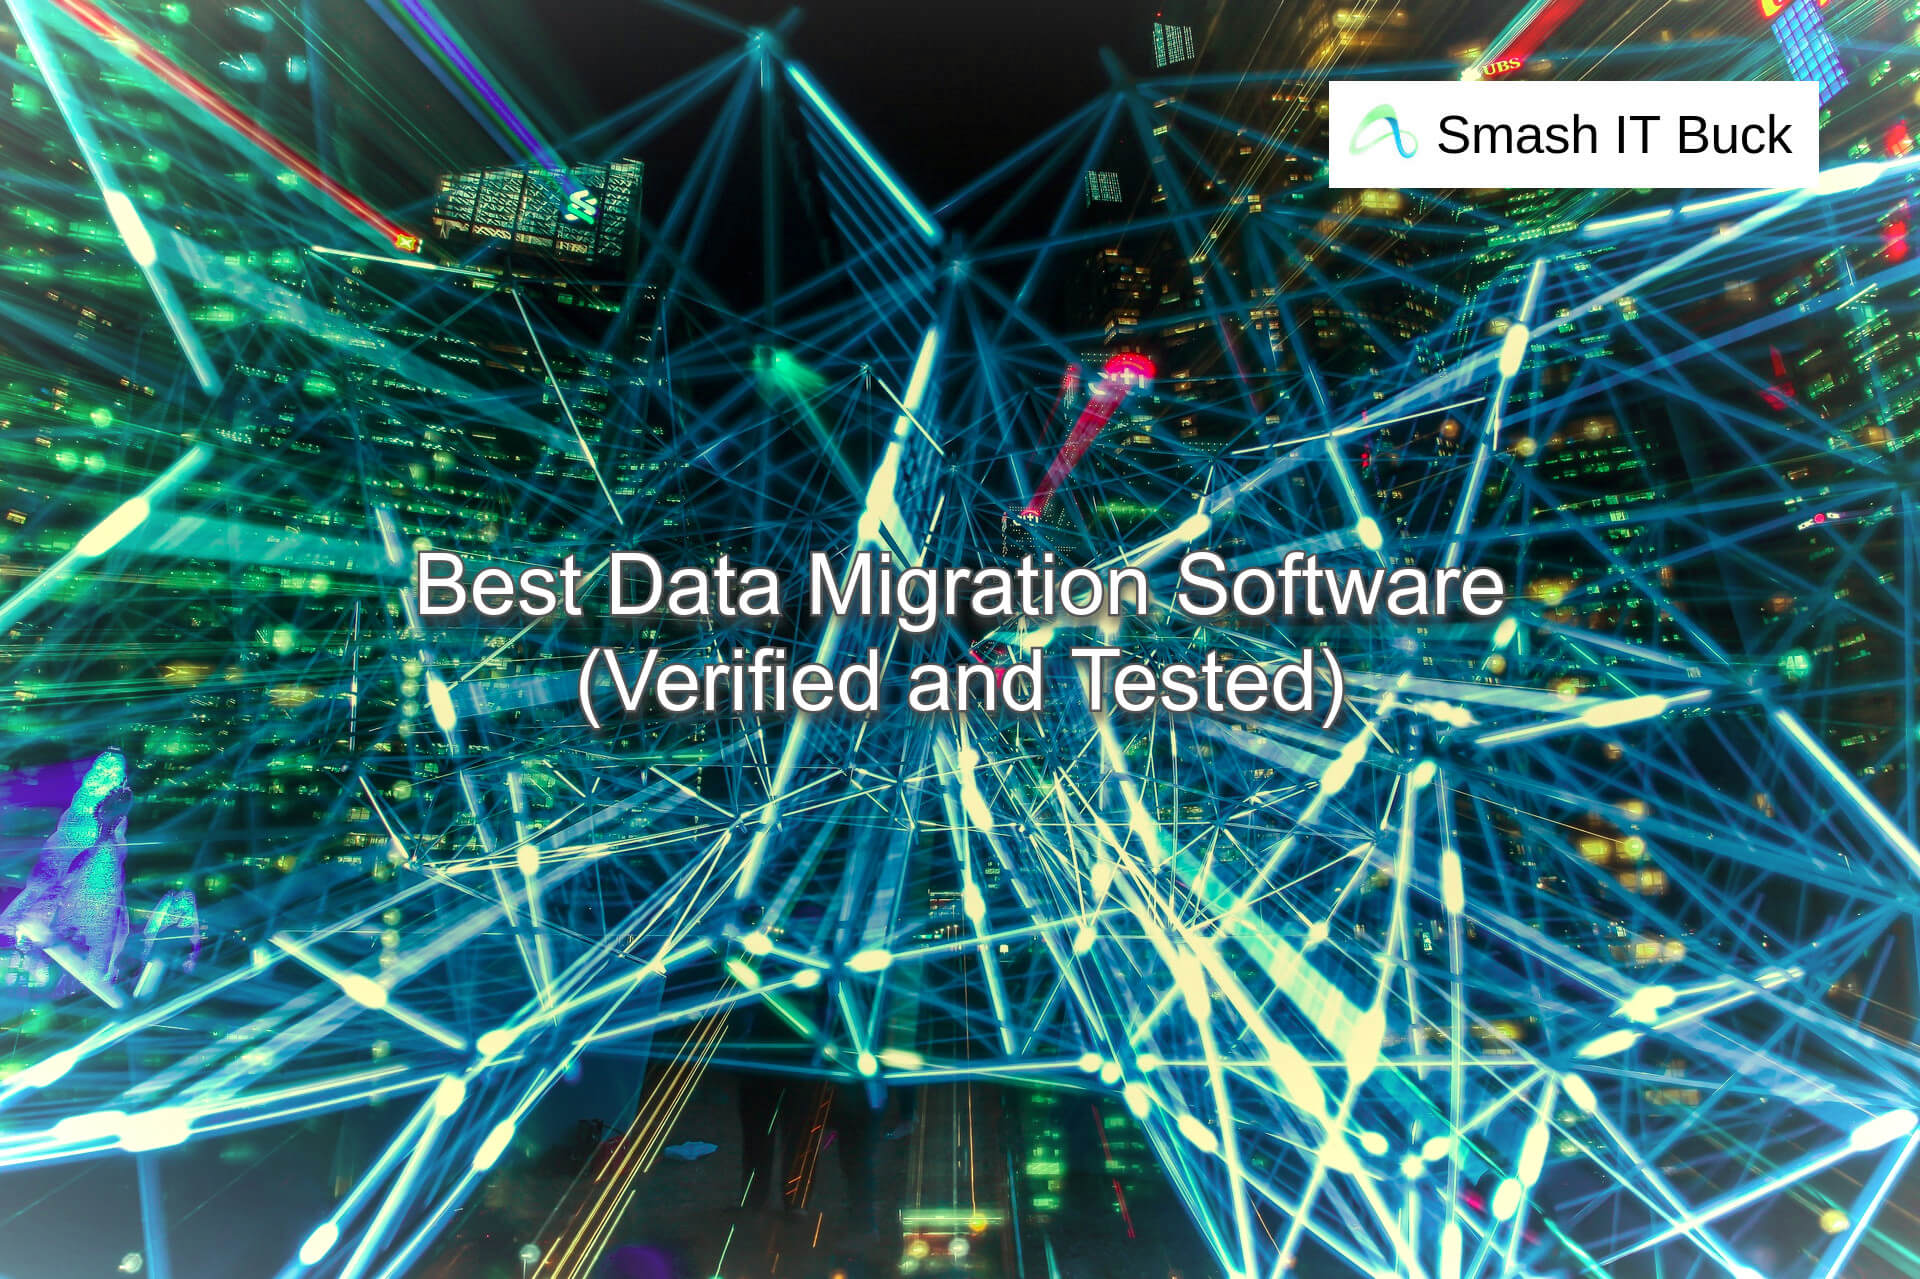 Best Data Migration Software in 2021 (Verified)